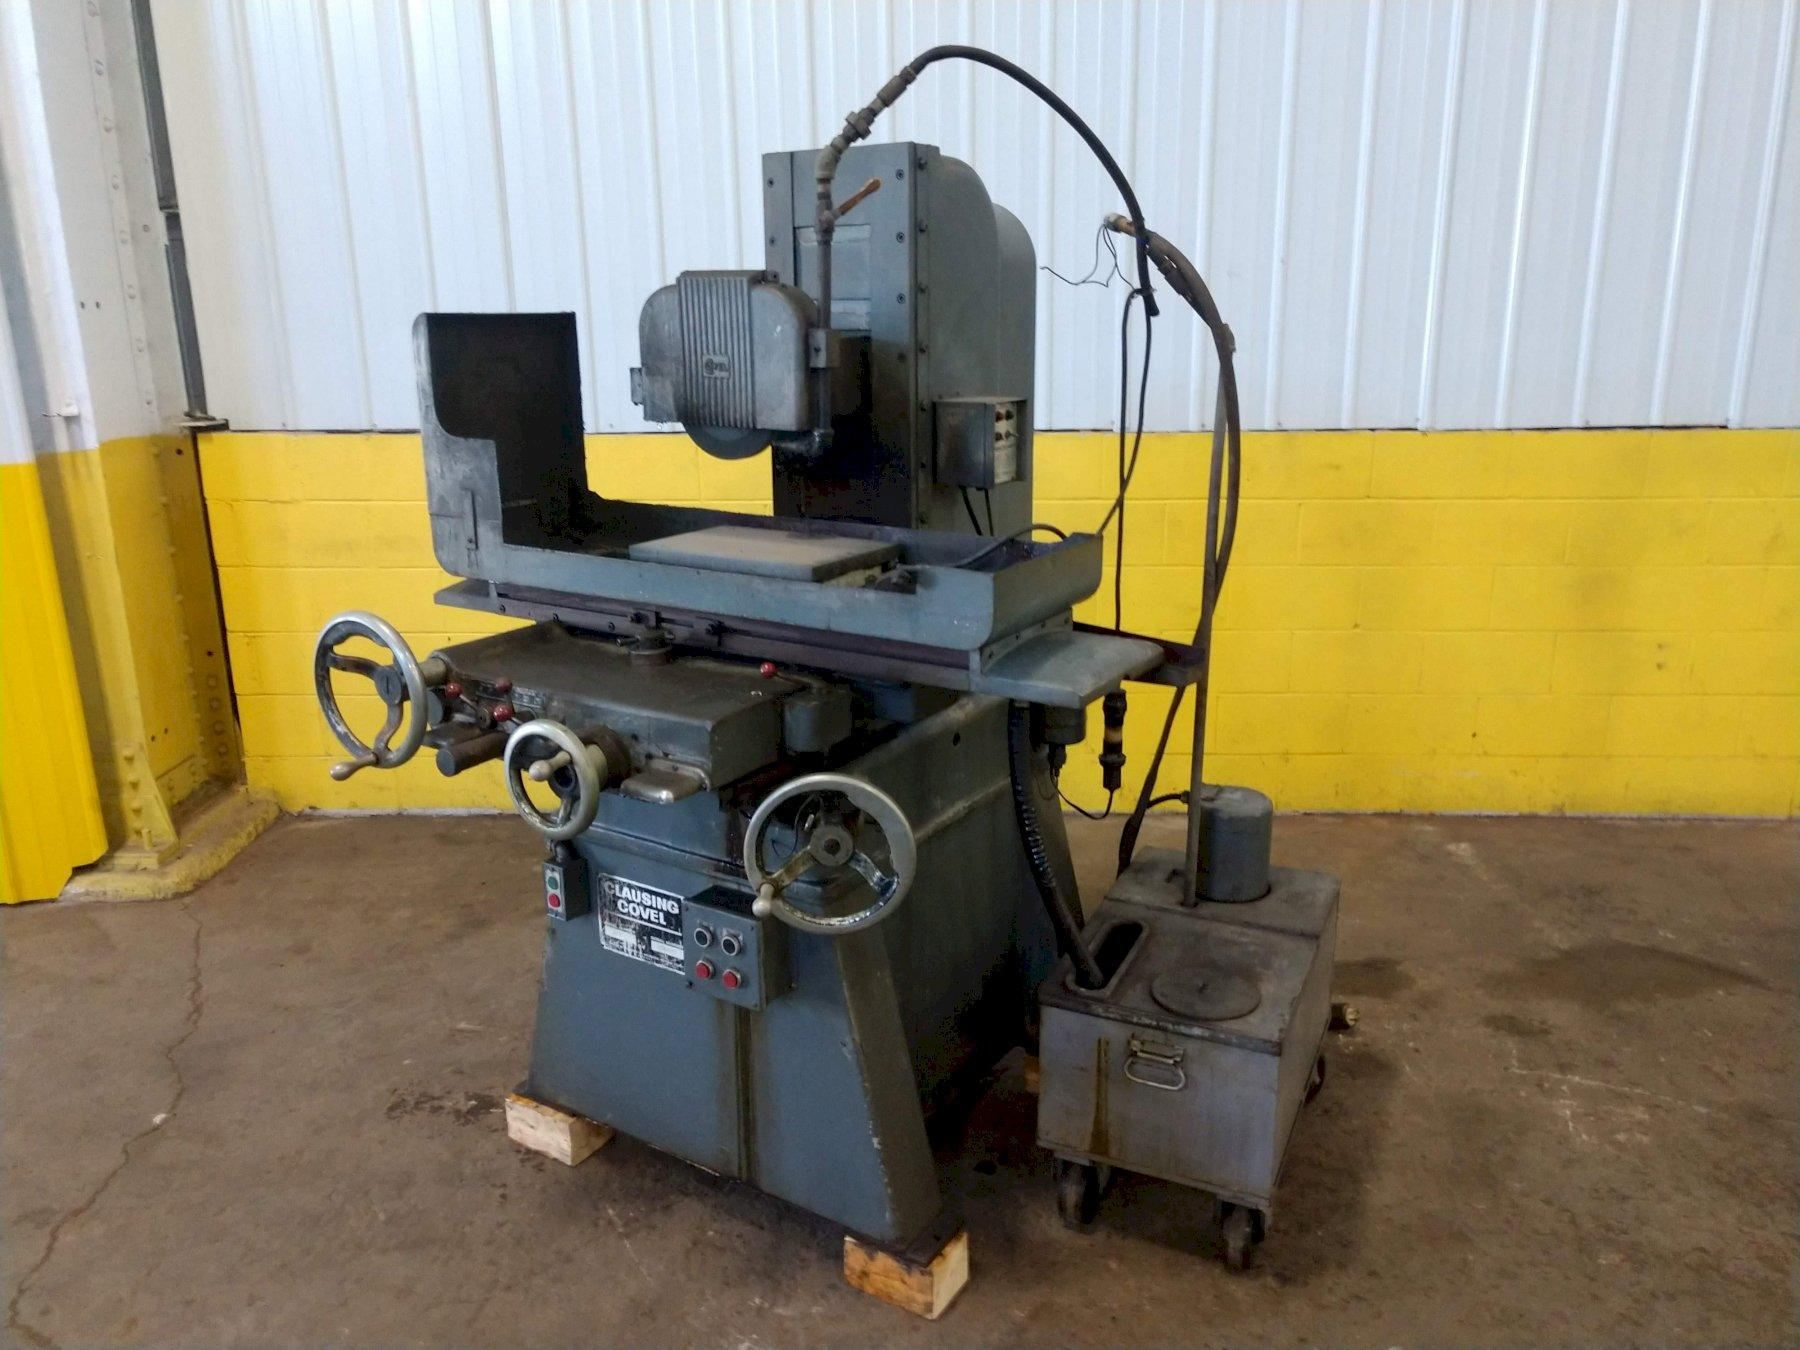 CLAUSING COVEL SURFACE GRINDER: STOCK #13600